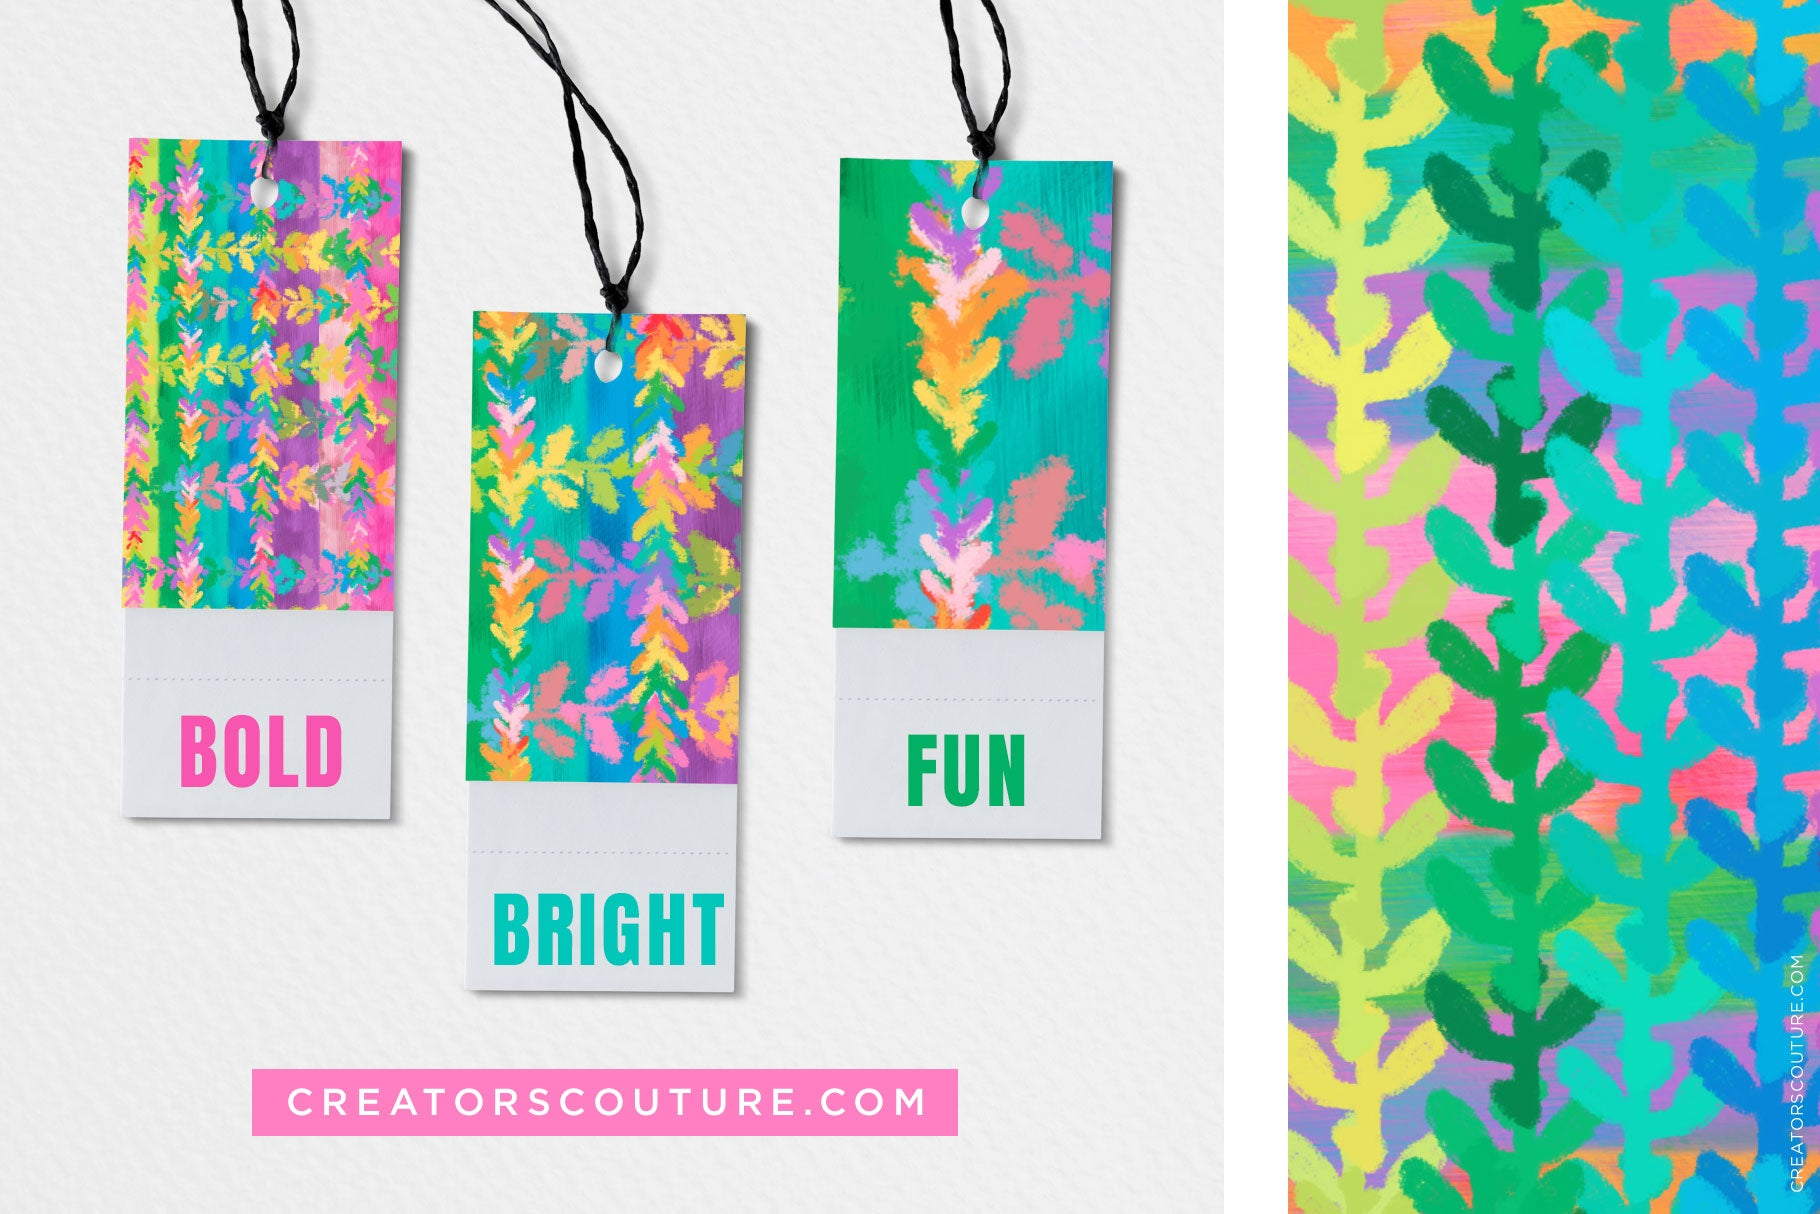 Rainbow Vine Pattern Digital Background: Bright and Bold - Creators Couture